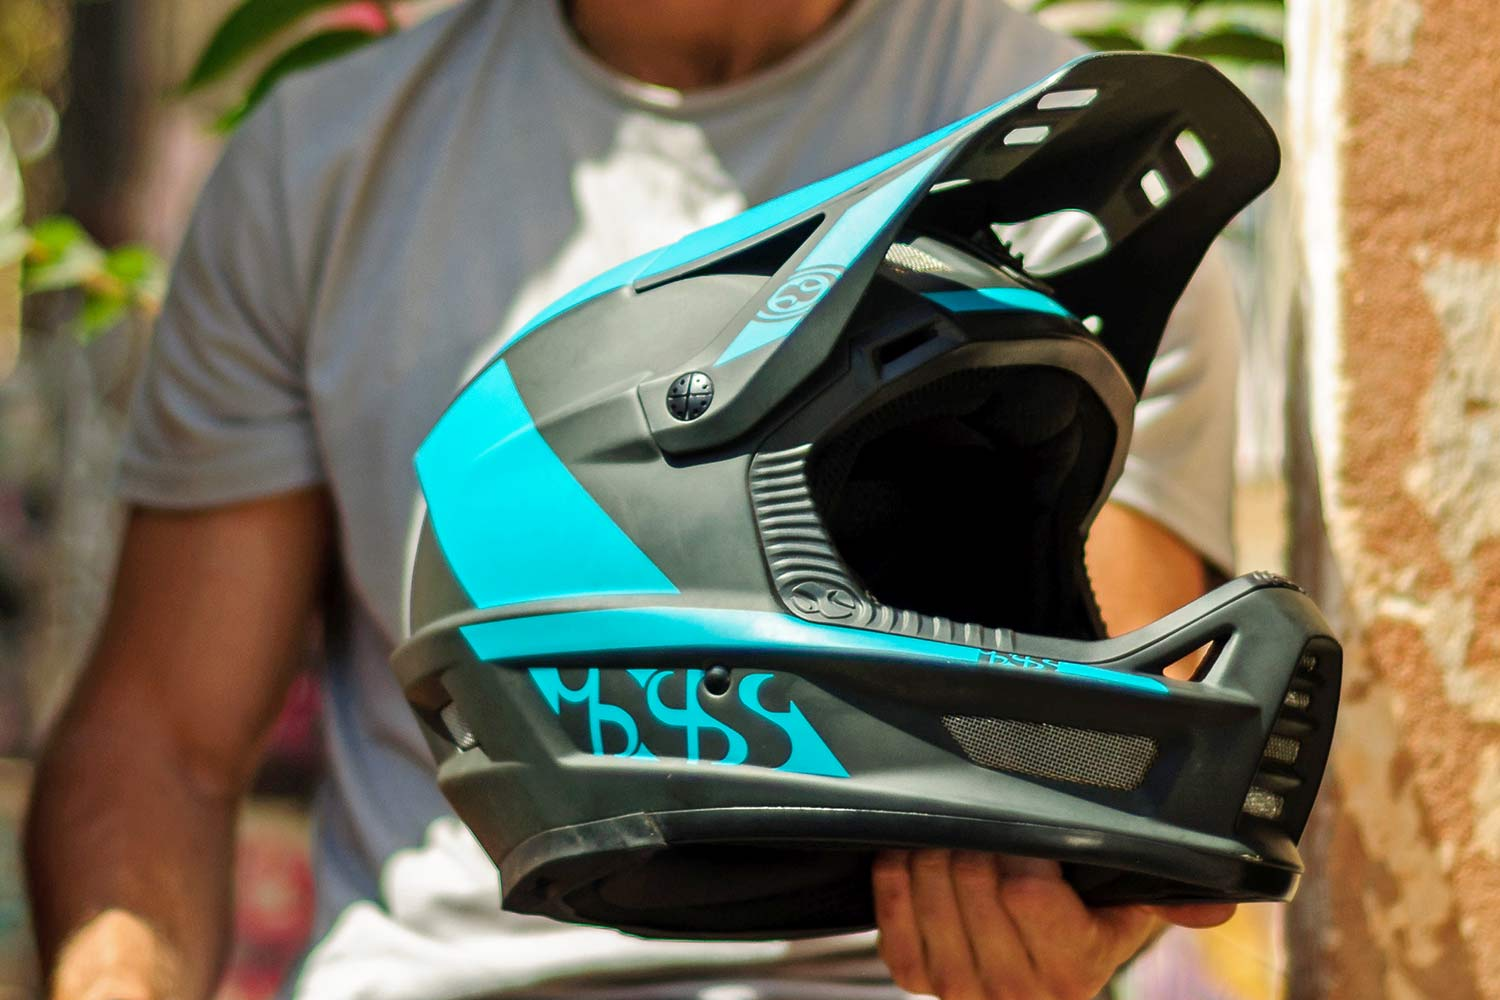 iXS Xult DH full face helmet, lightweight downhill race protection,angled